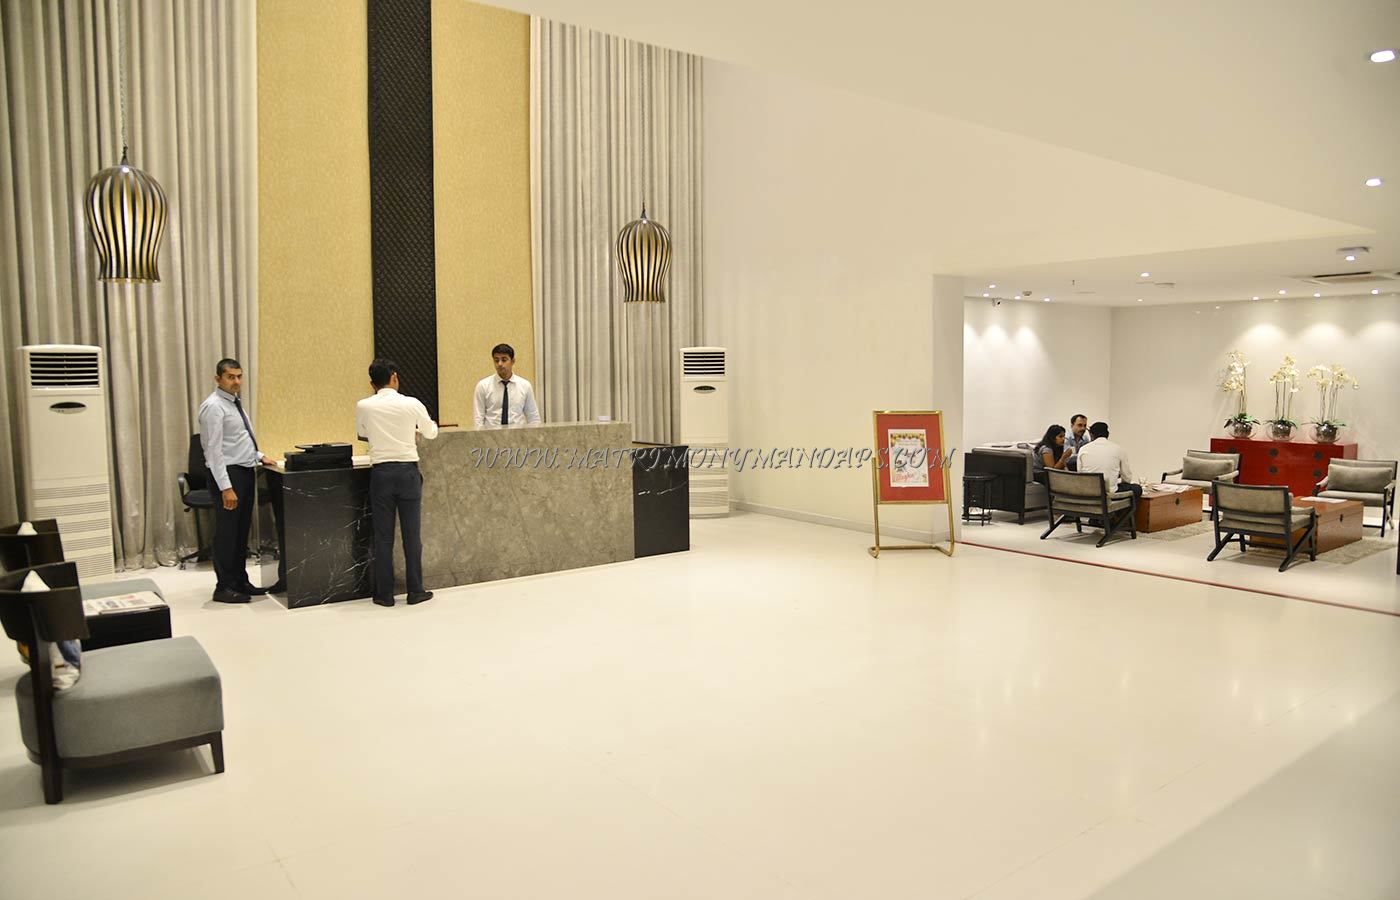 Find the availability of the Deccan Serai Hotel Mint (A/C) in HITEC City, Hyderabad and avail special offers